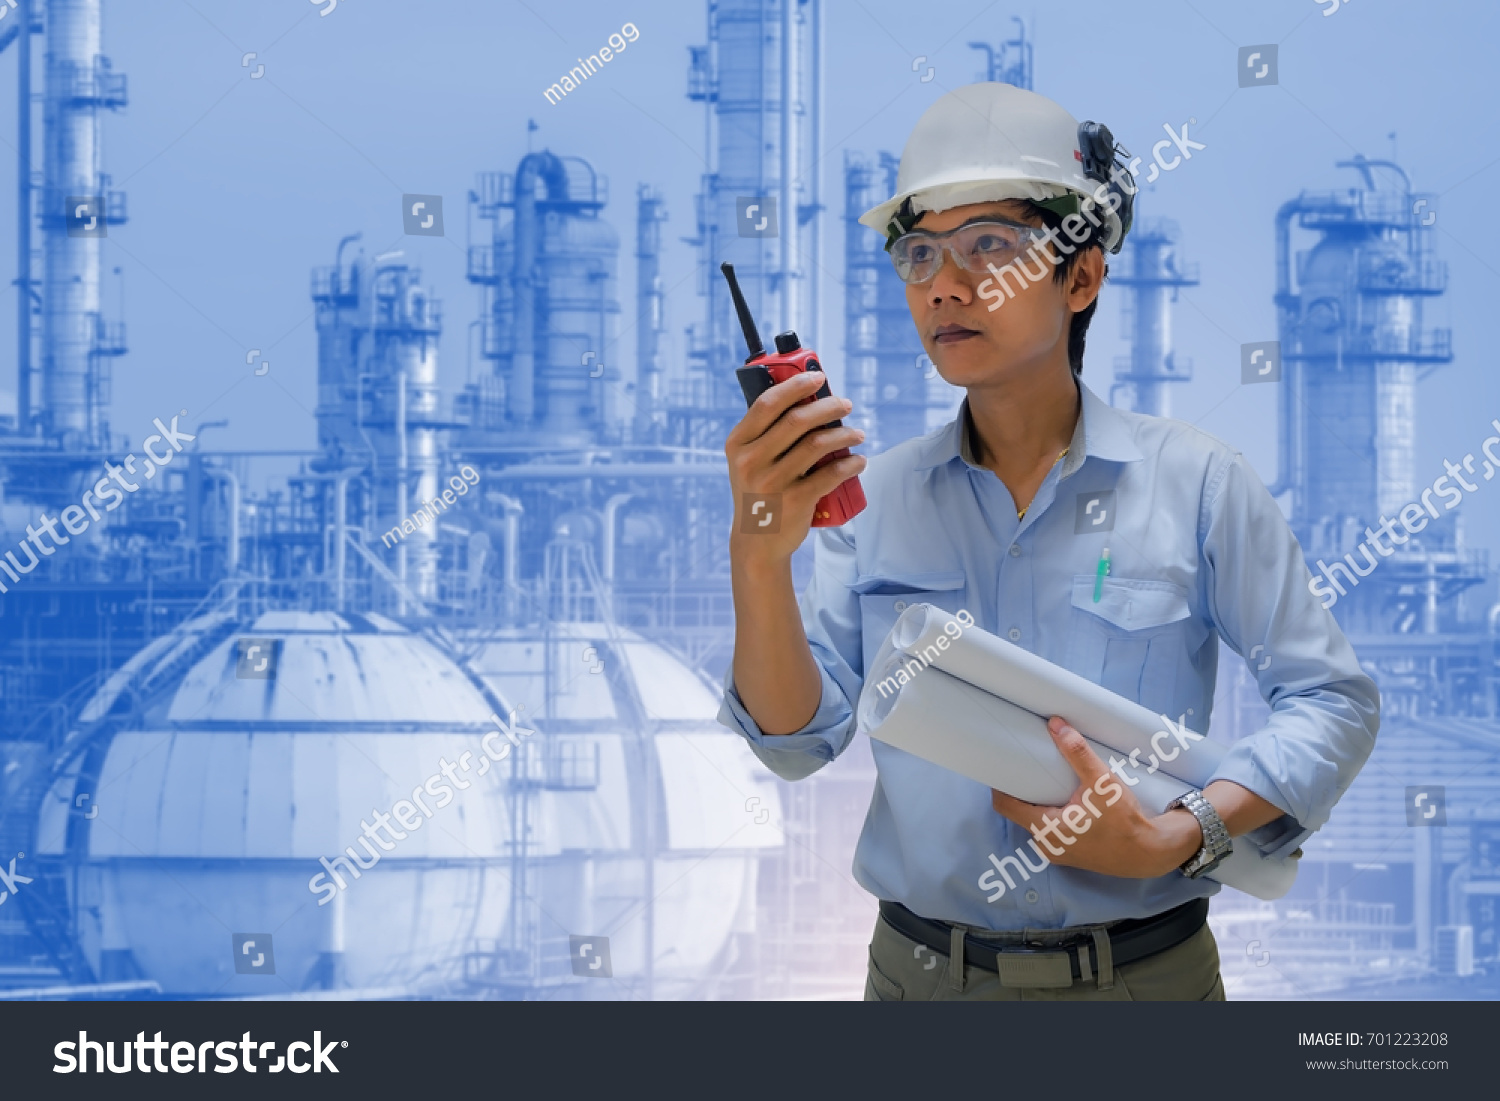 Operator Engineering Standing Talk Radio Communication Stock Photo Process Flow Diagram Or And Hand Holding On Petrochemical Plant